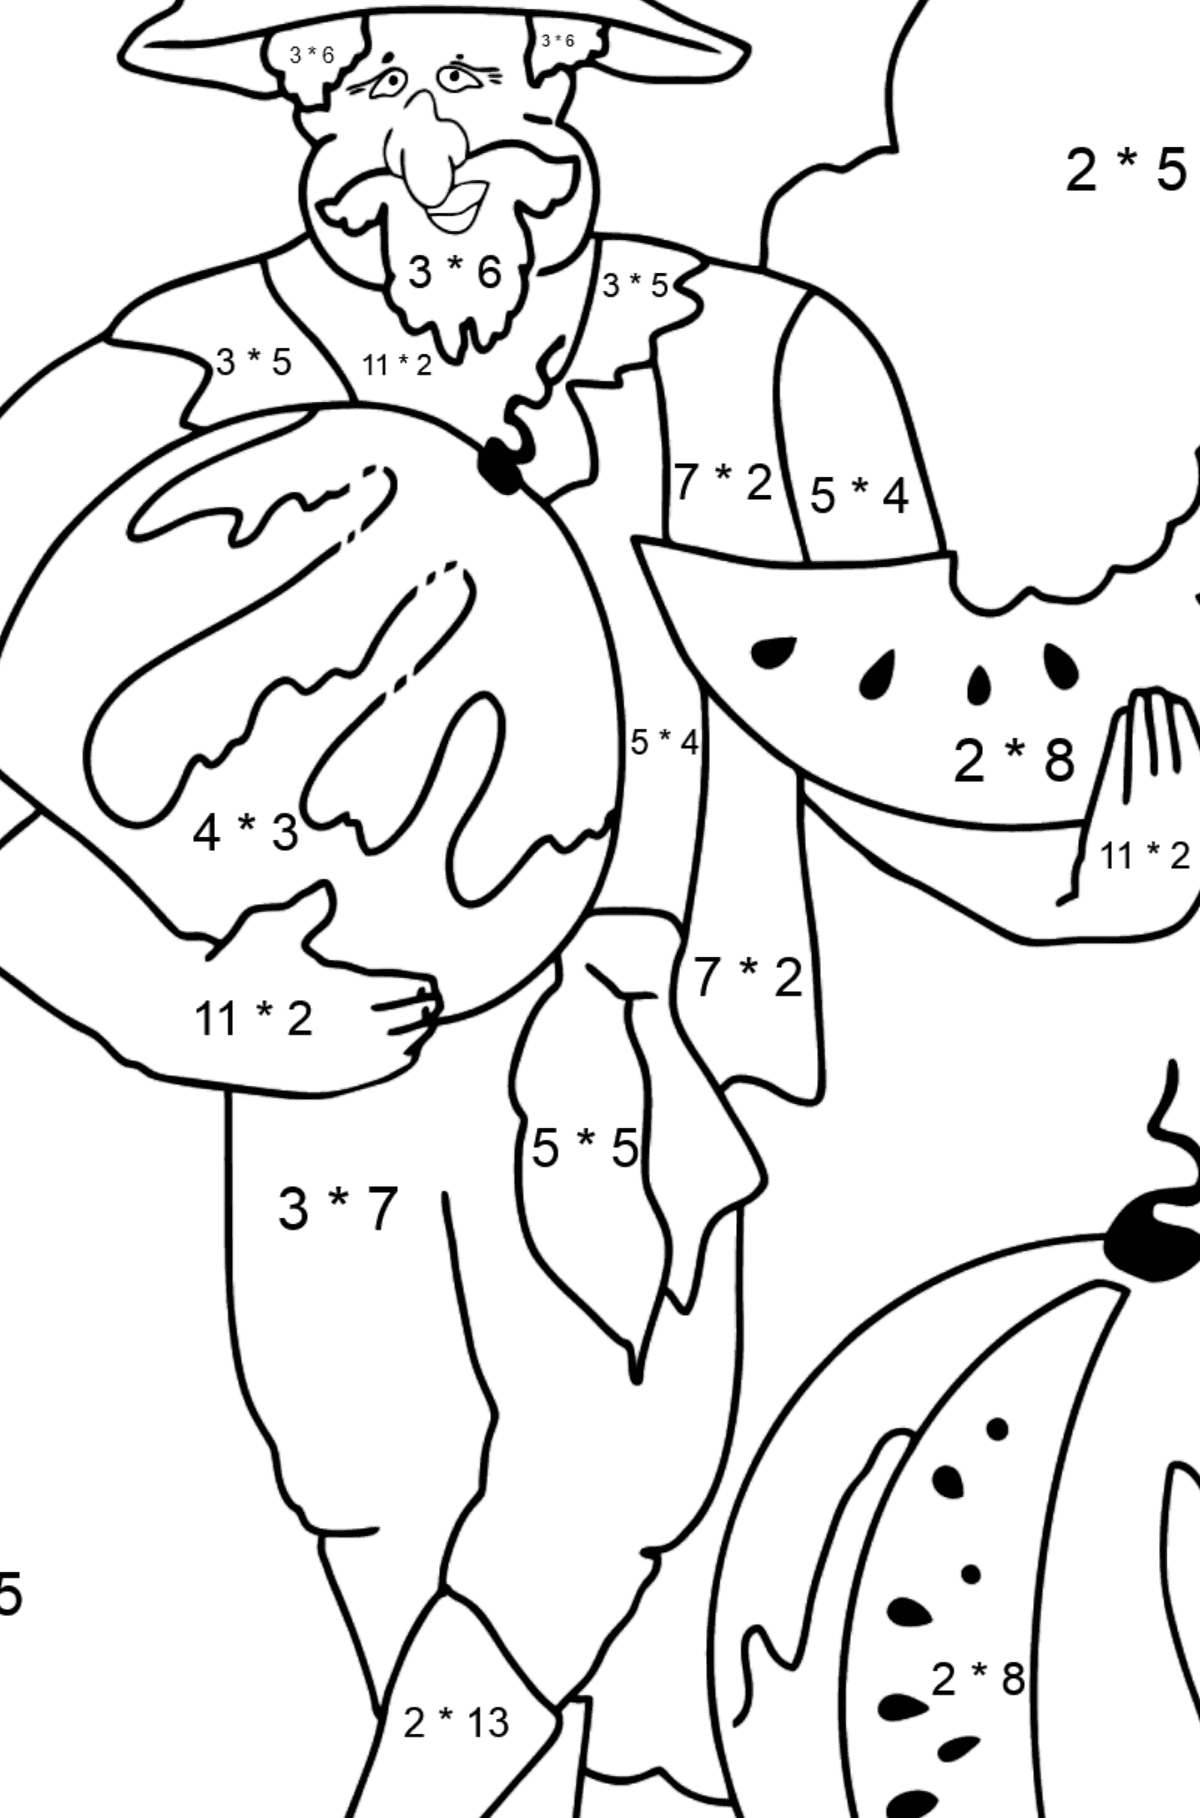 Coloring Page - A Pirate is Eating a Tasty Watermelon - Math Coloring - Multiplication for Kids